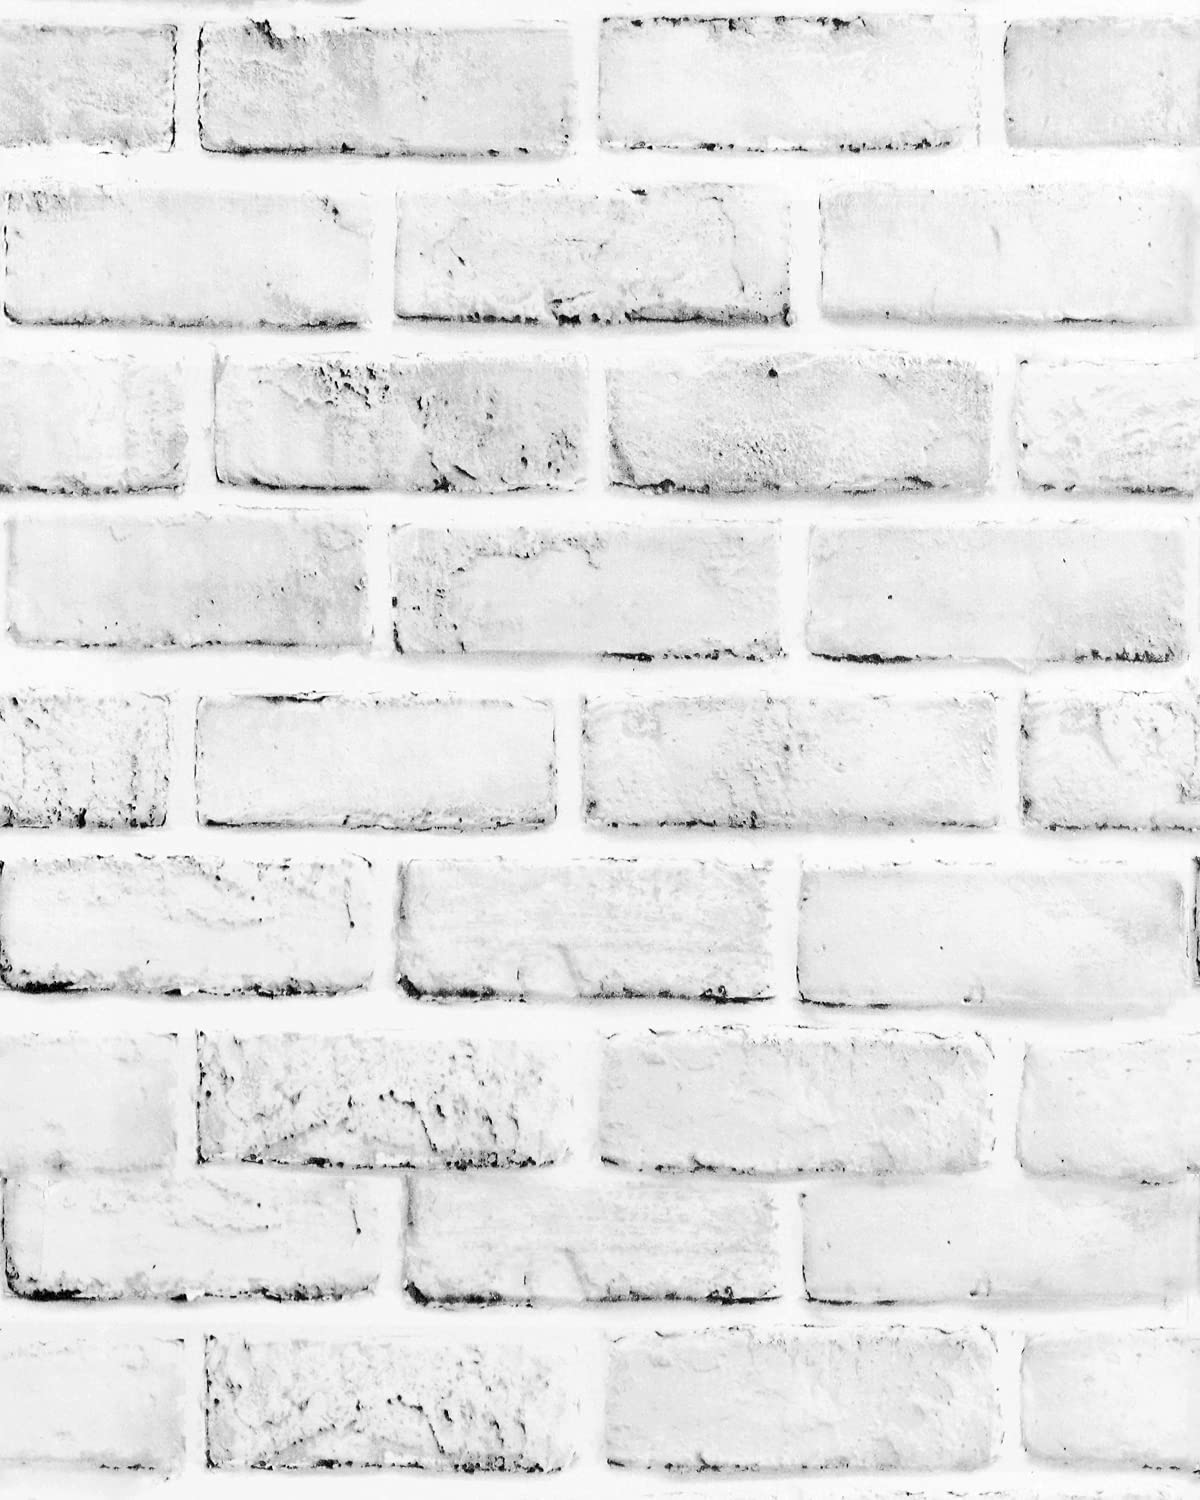 GloryTik White Gray Brick Wallpaper Stick and Peel Limited Special Challenge the lowest price of Japan ☆ Price 17.